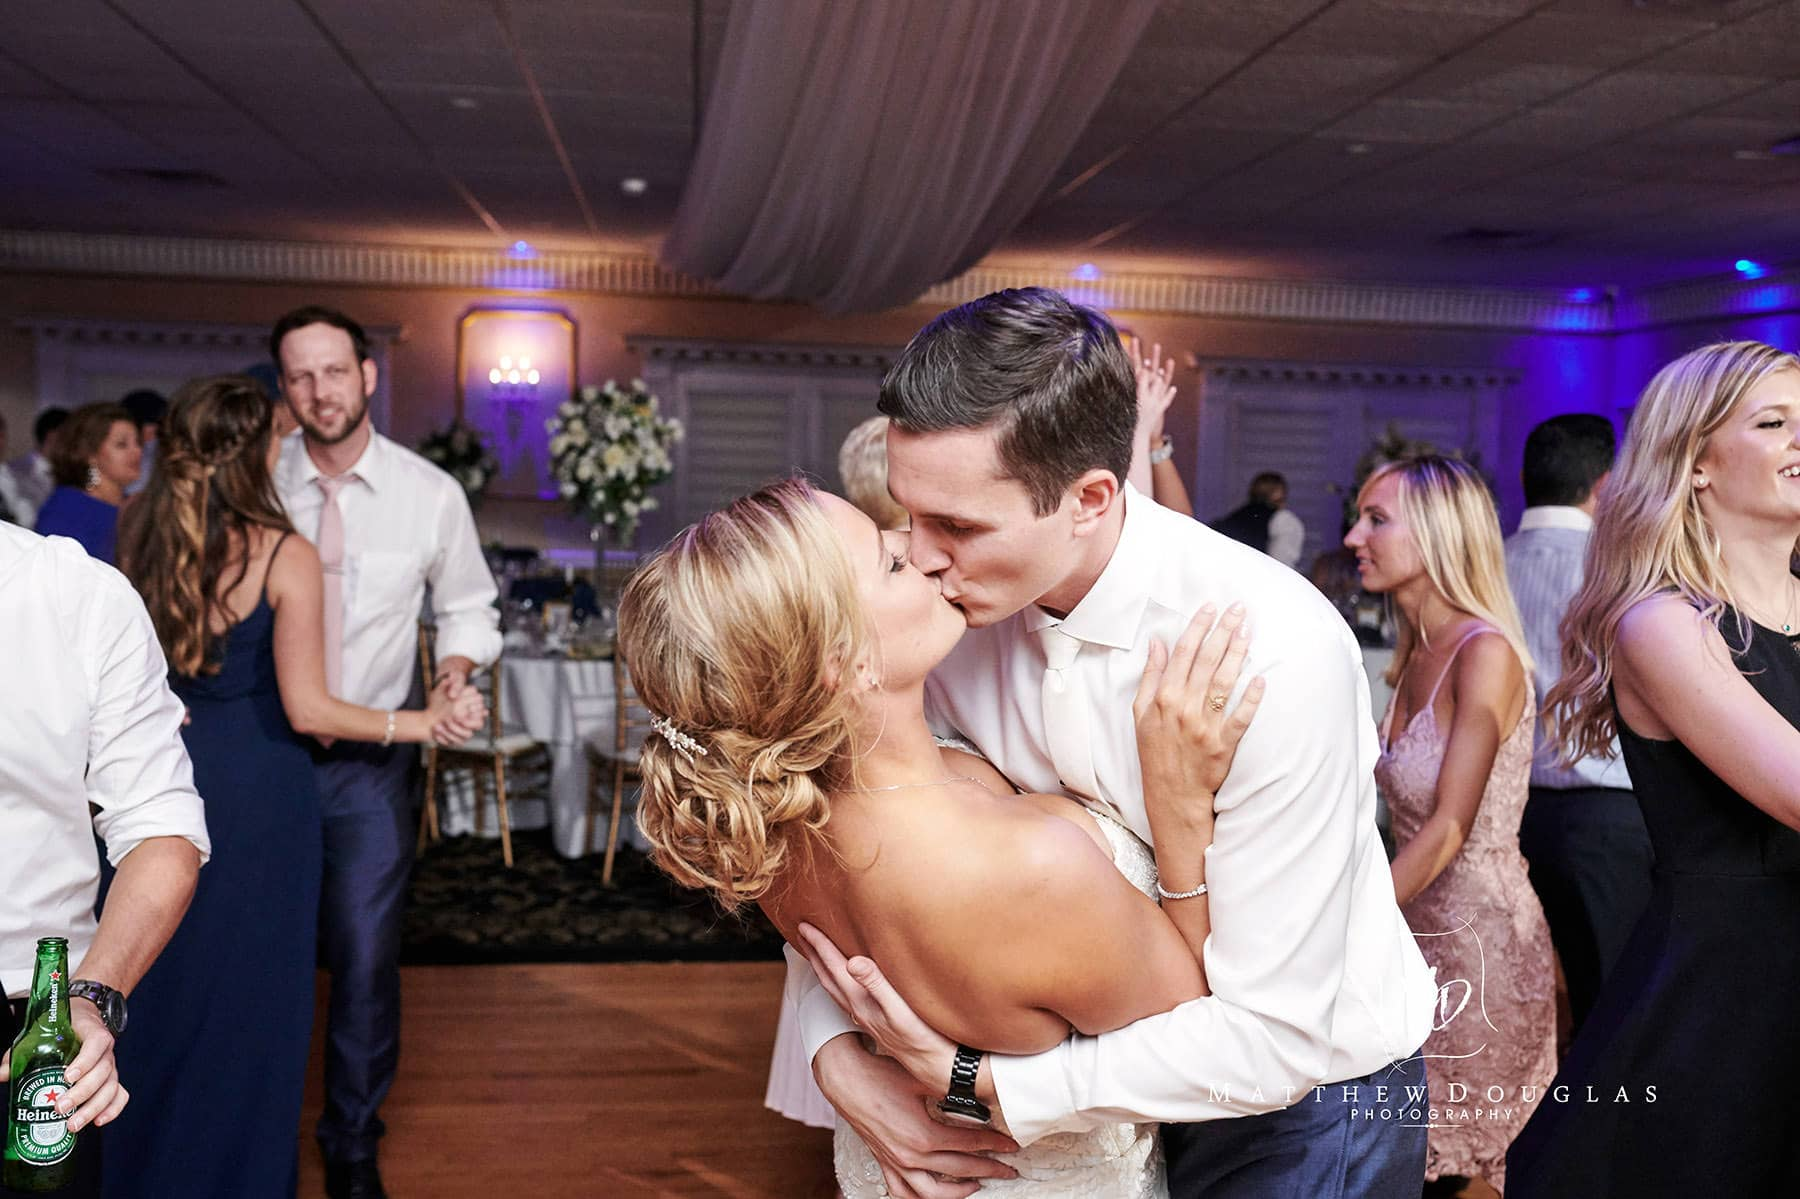 Chandelier Flanders Valley Wedding dance floor kiss photo